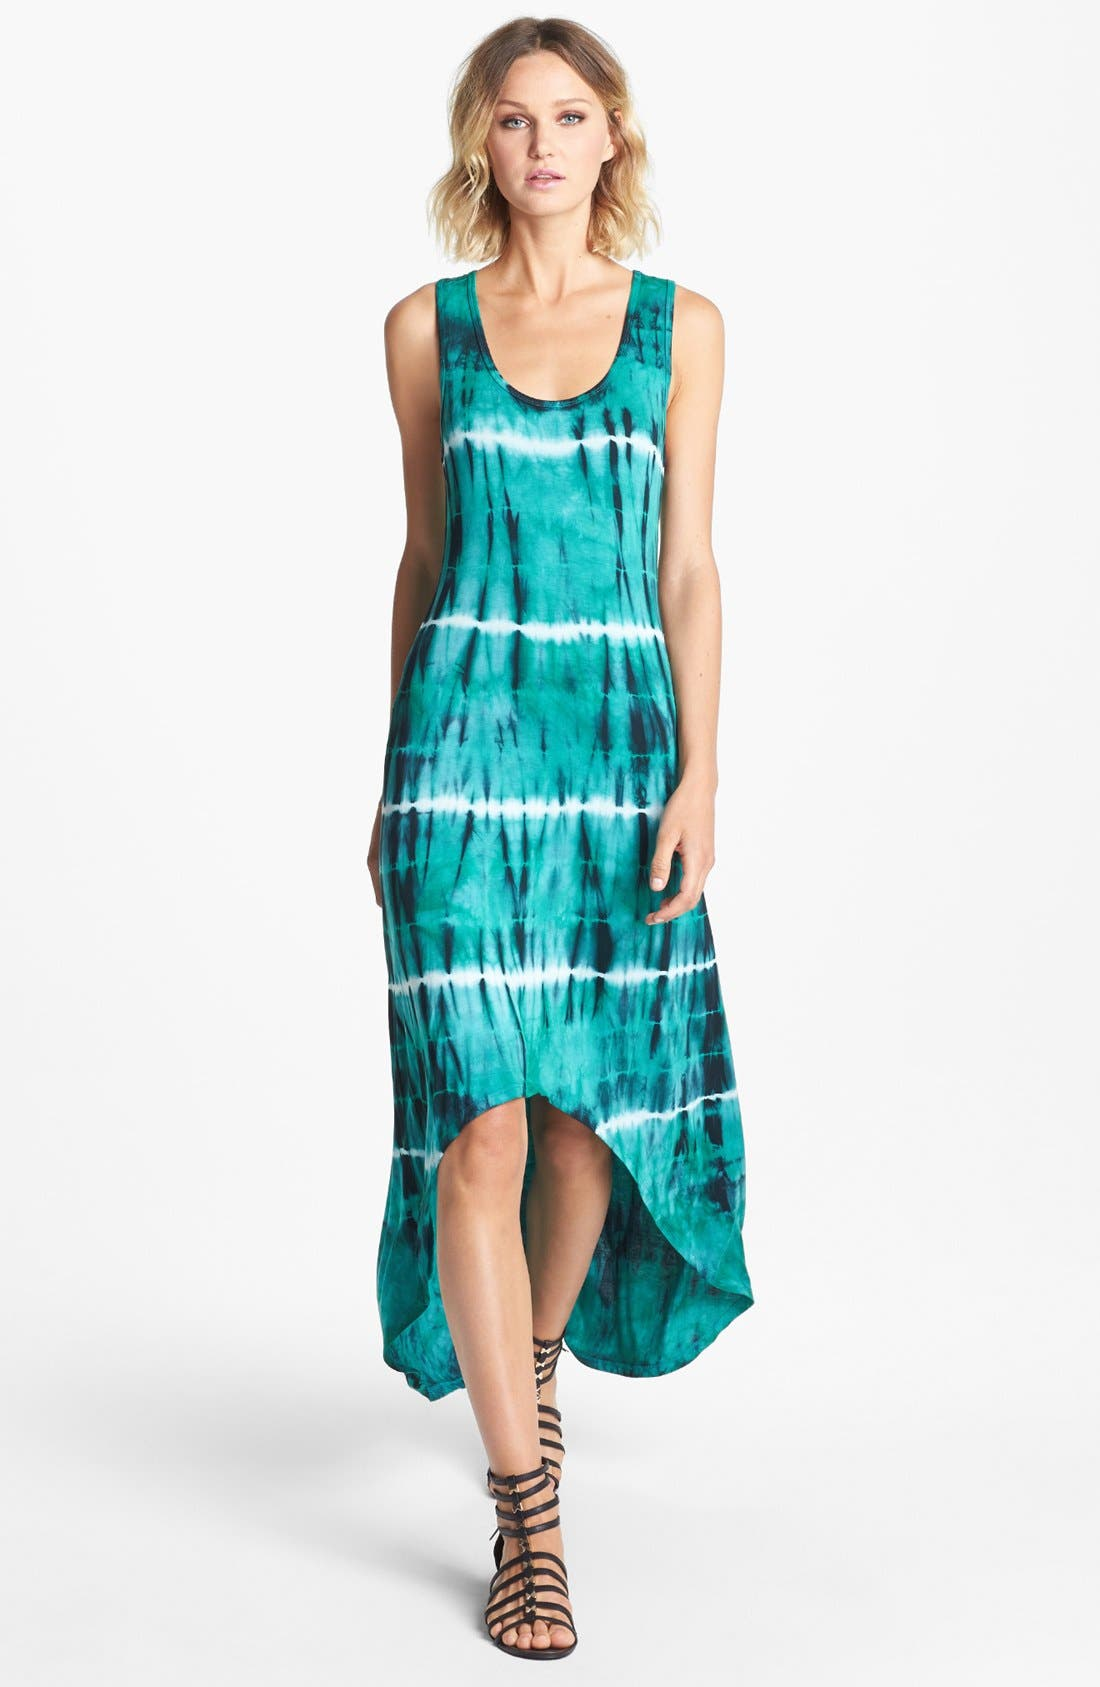 Alternate Image 1 Selected - Felicity & Coco 'Ivy' Tie Dye Maxi Dress (Nordstrom Exclusive)